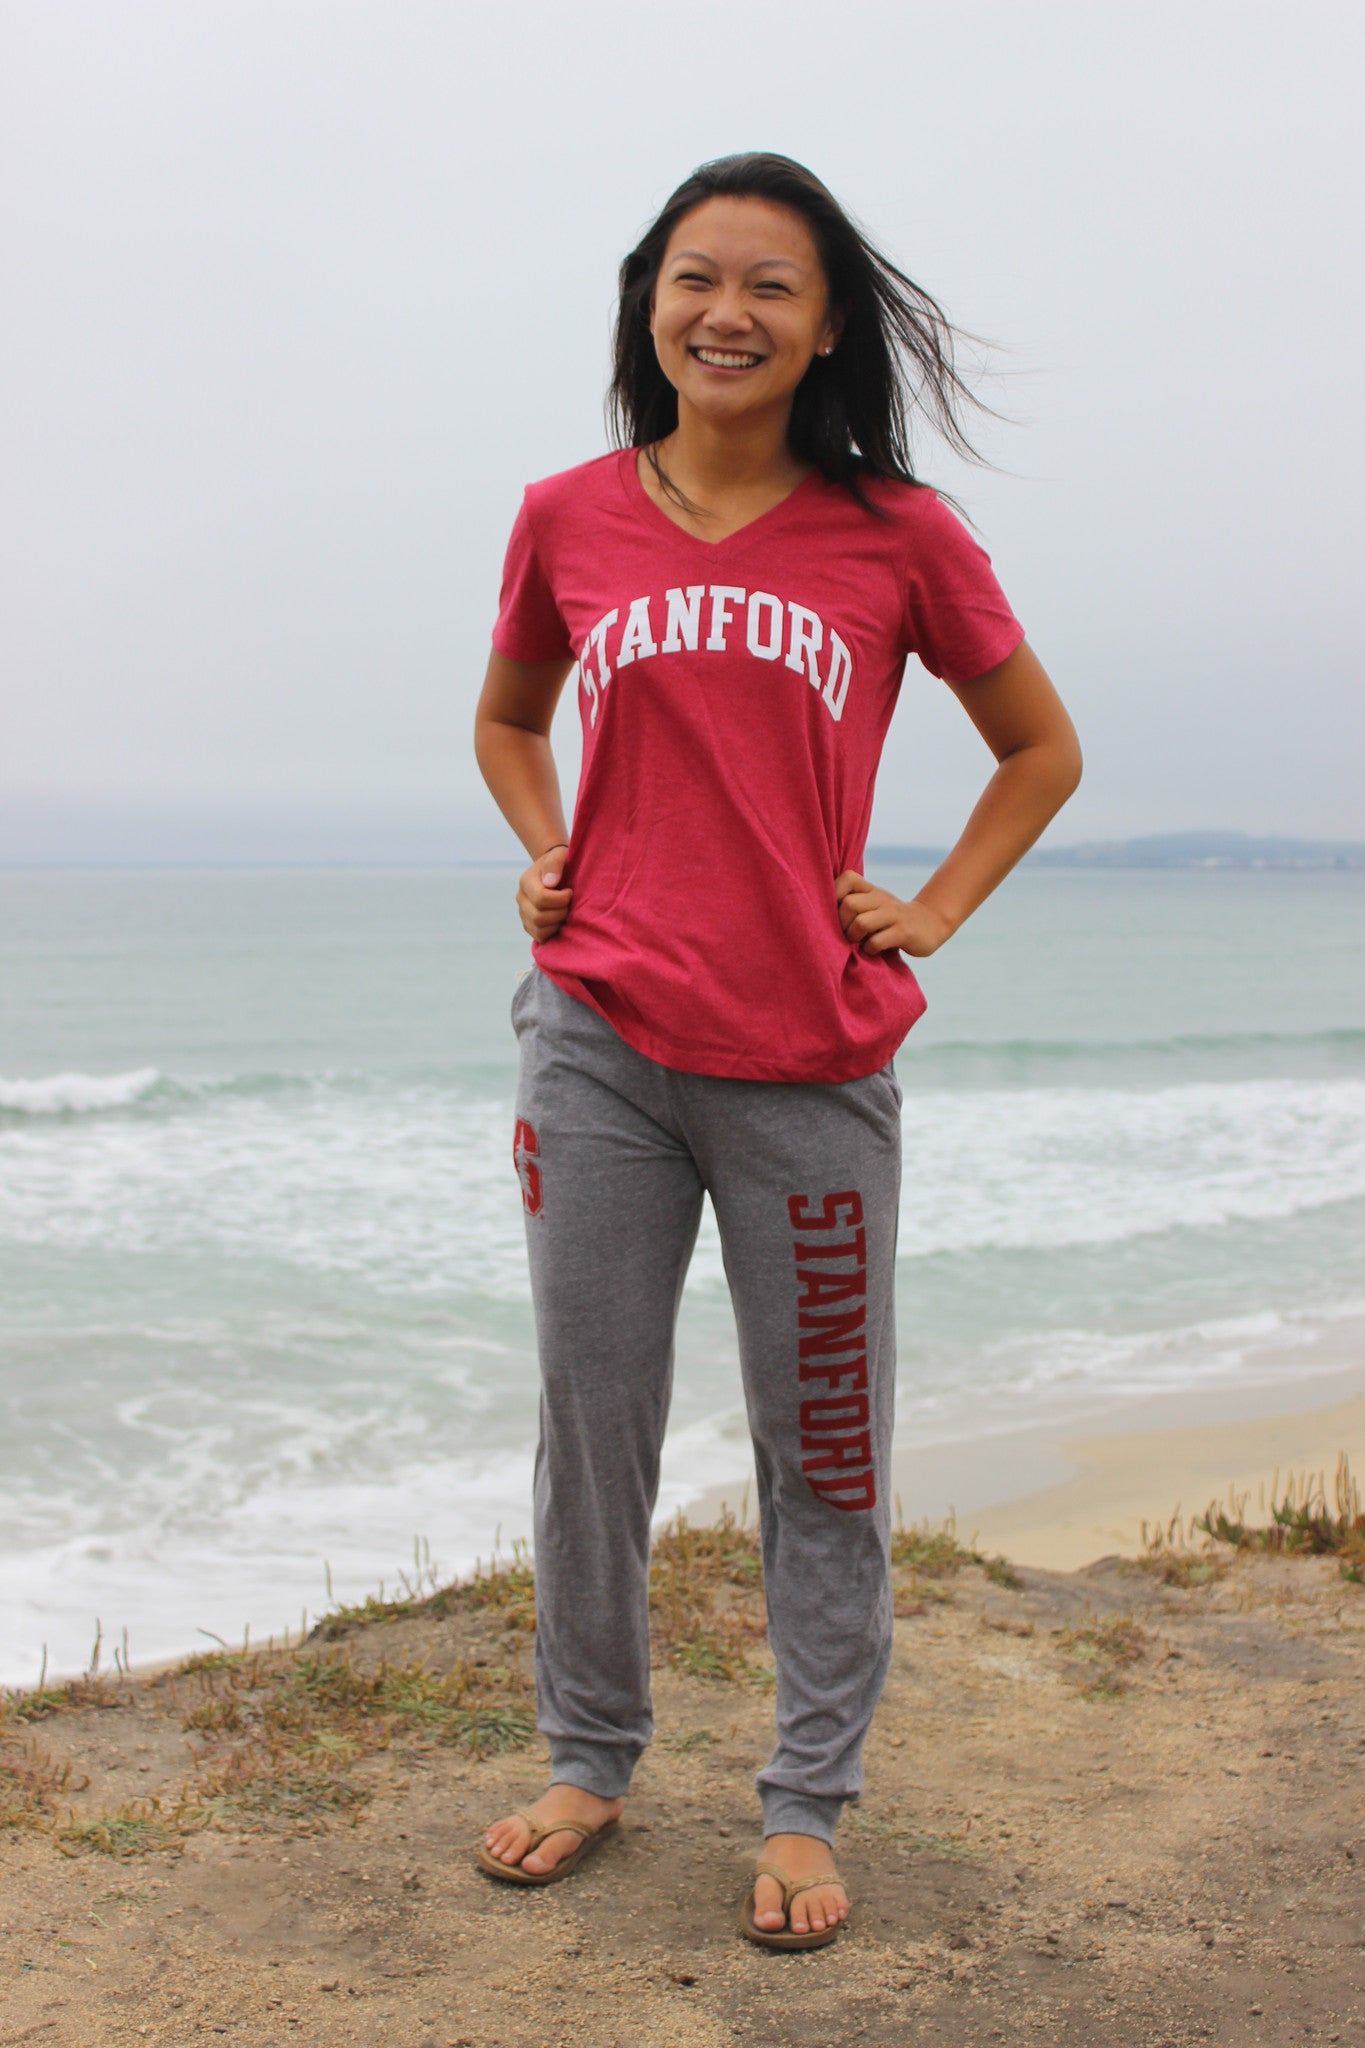 My Favorite Jogger - Stanford Student Store